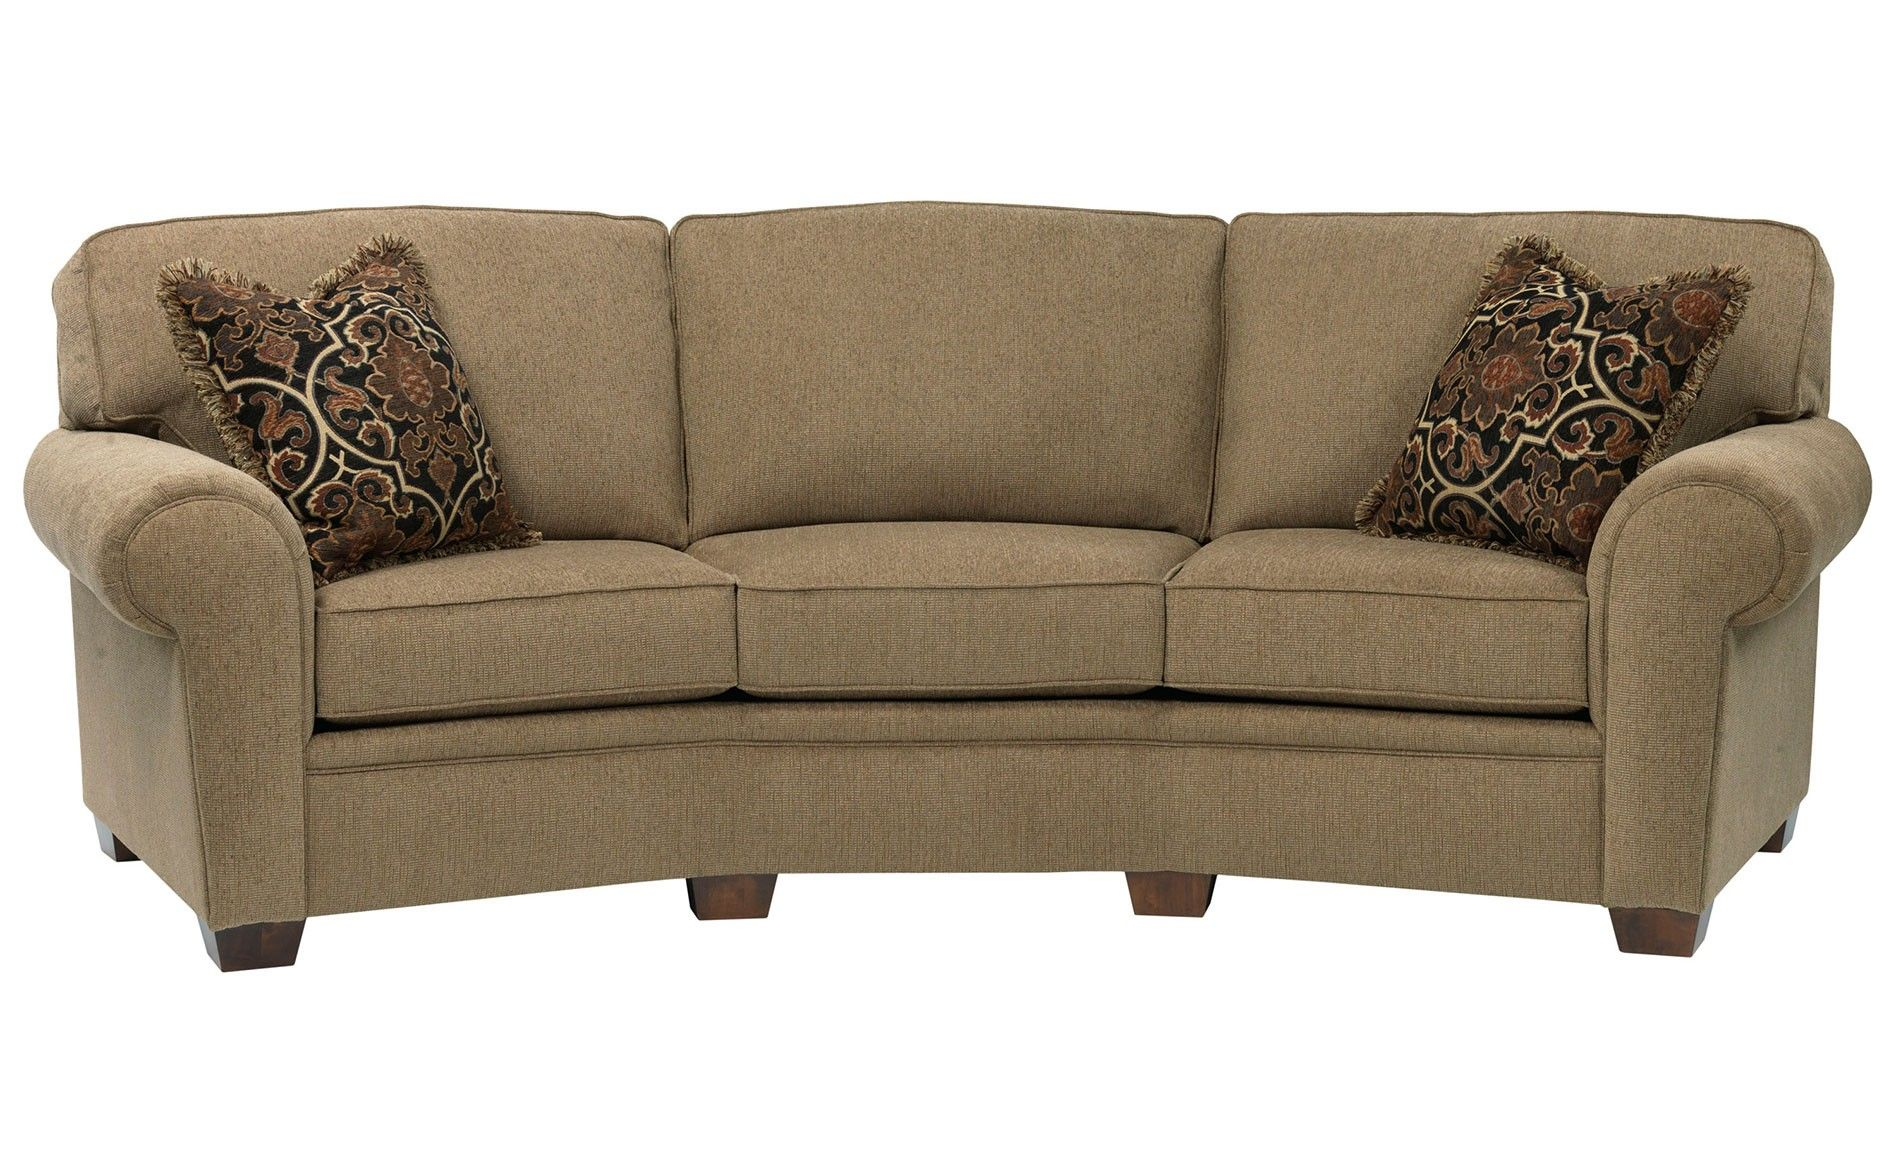 Broyhill Sofa With Images